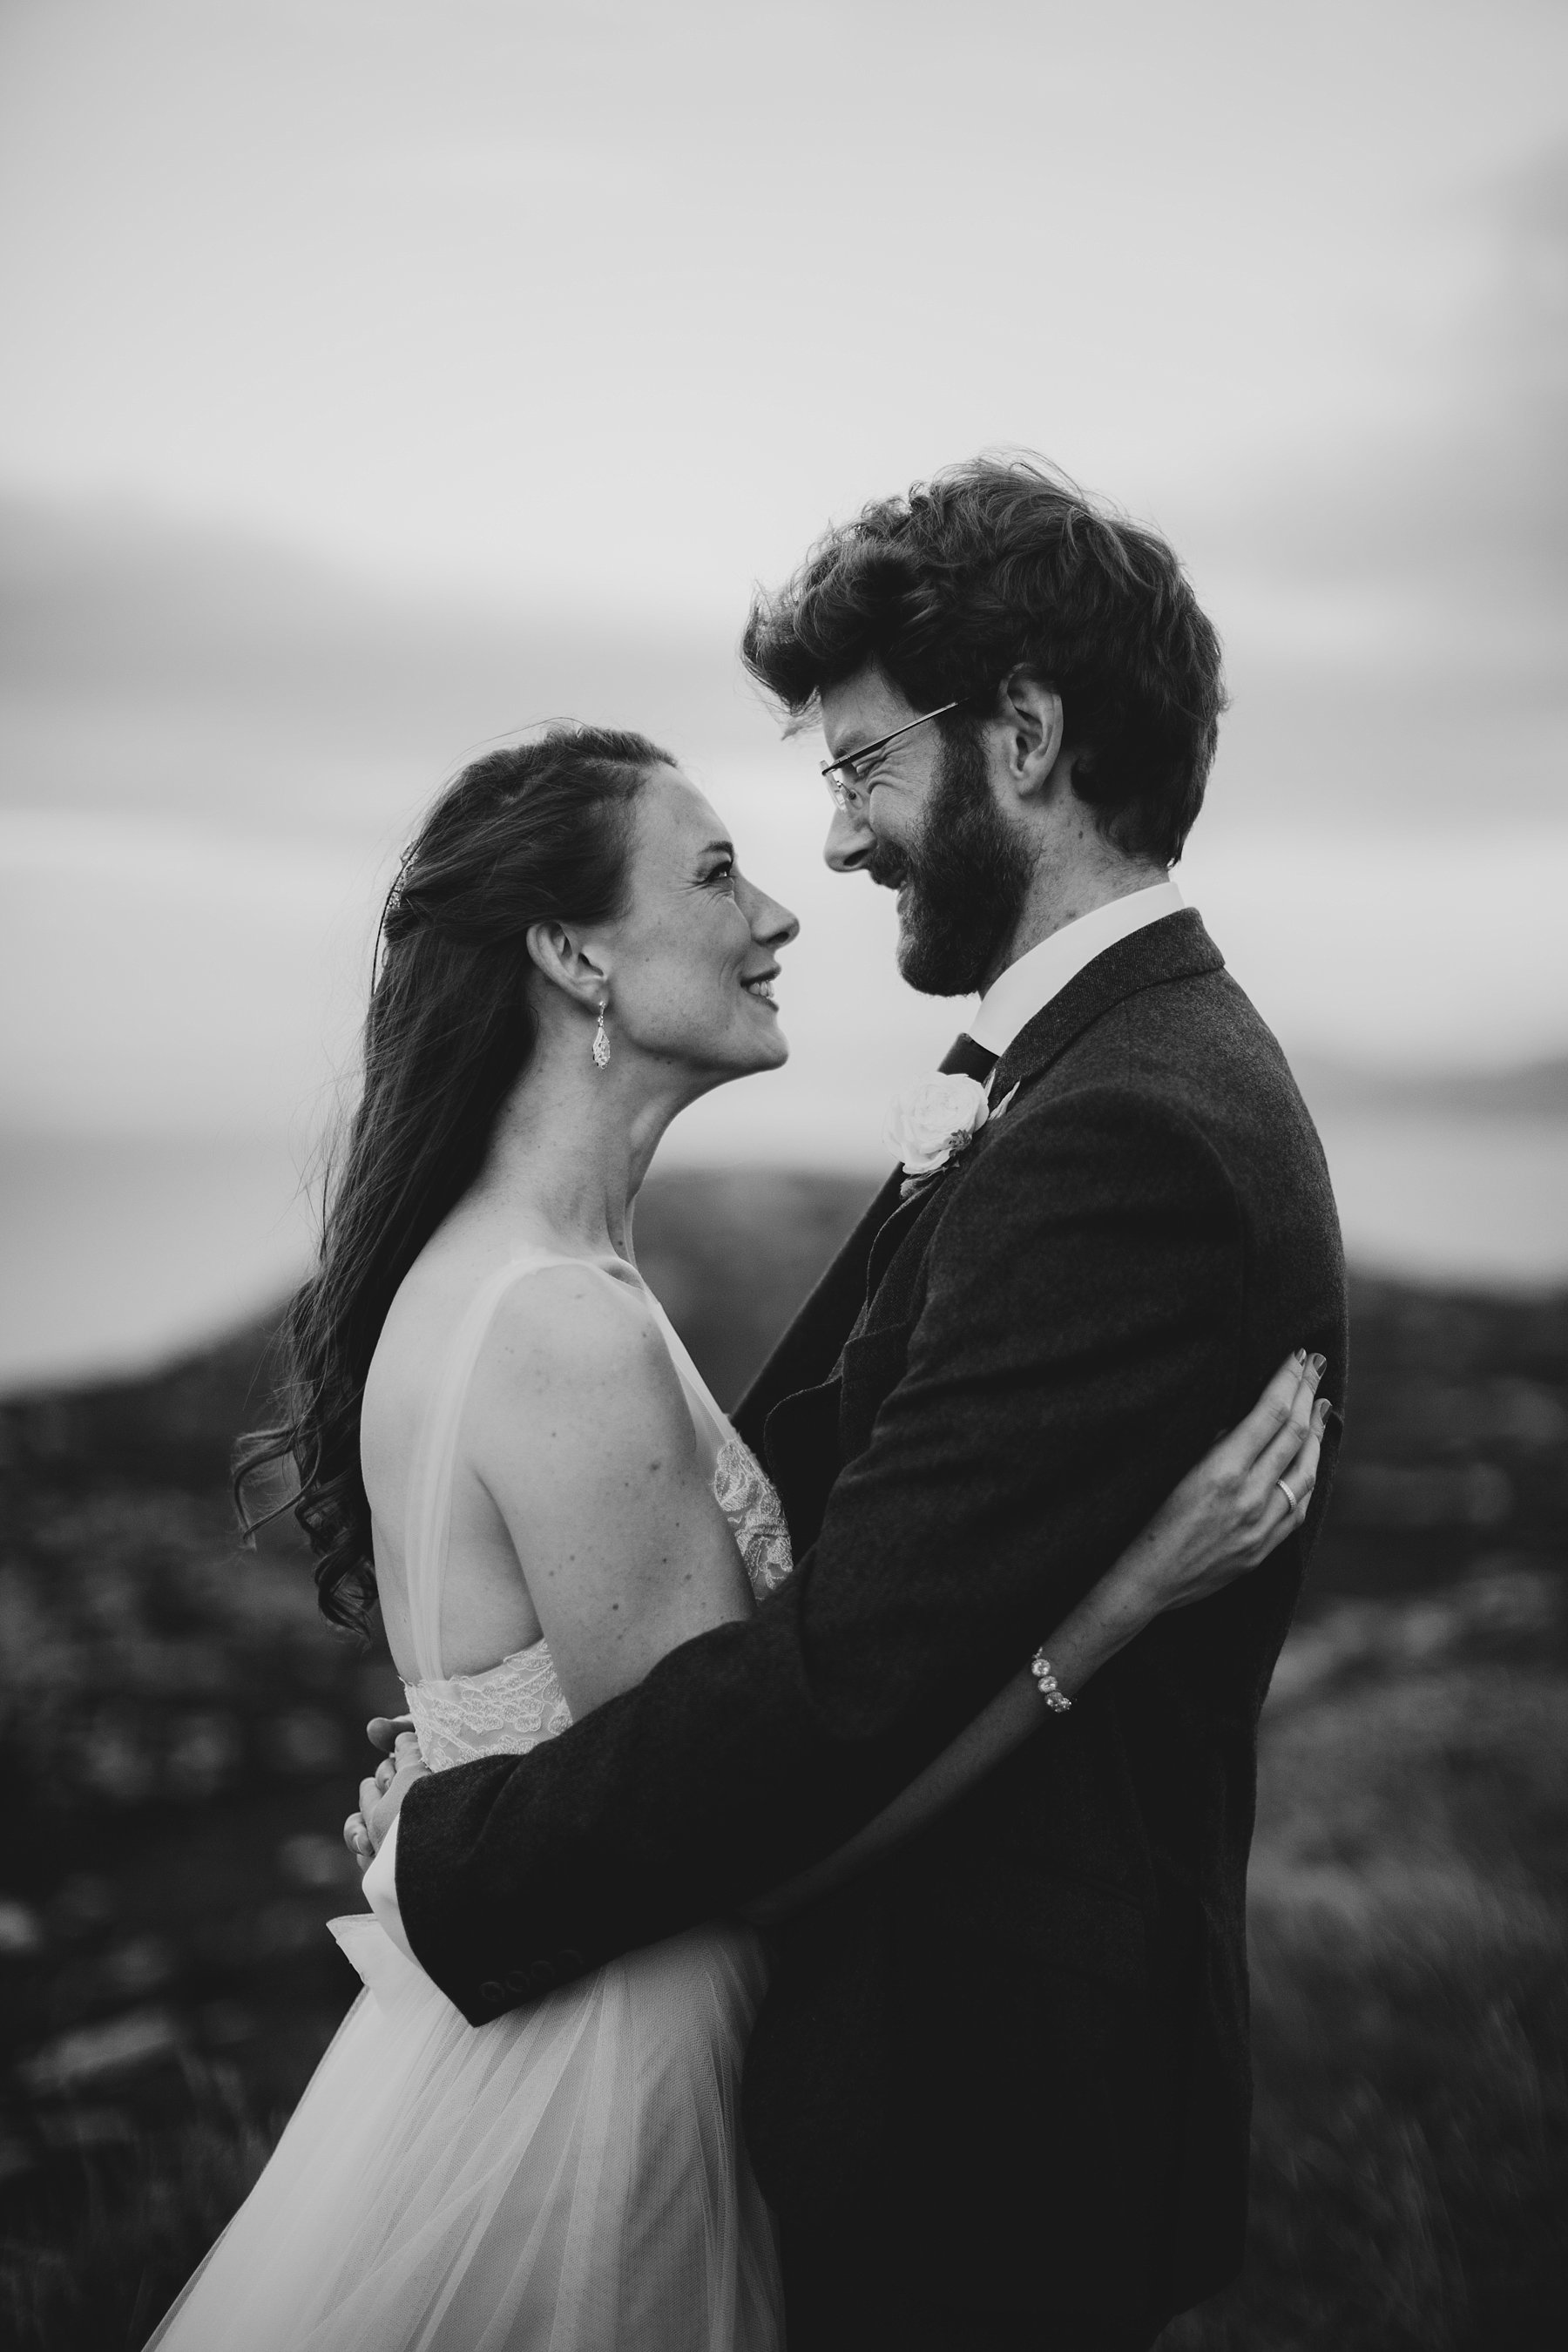 hornhead_donegak_elopement_weddings_0085